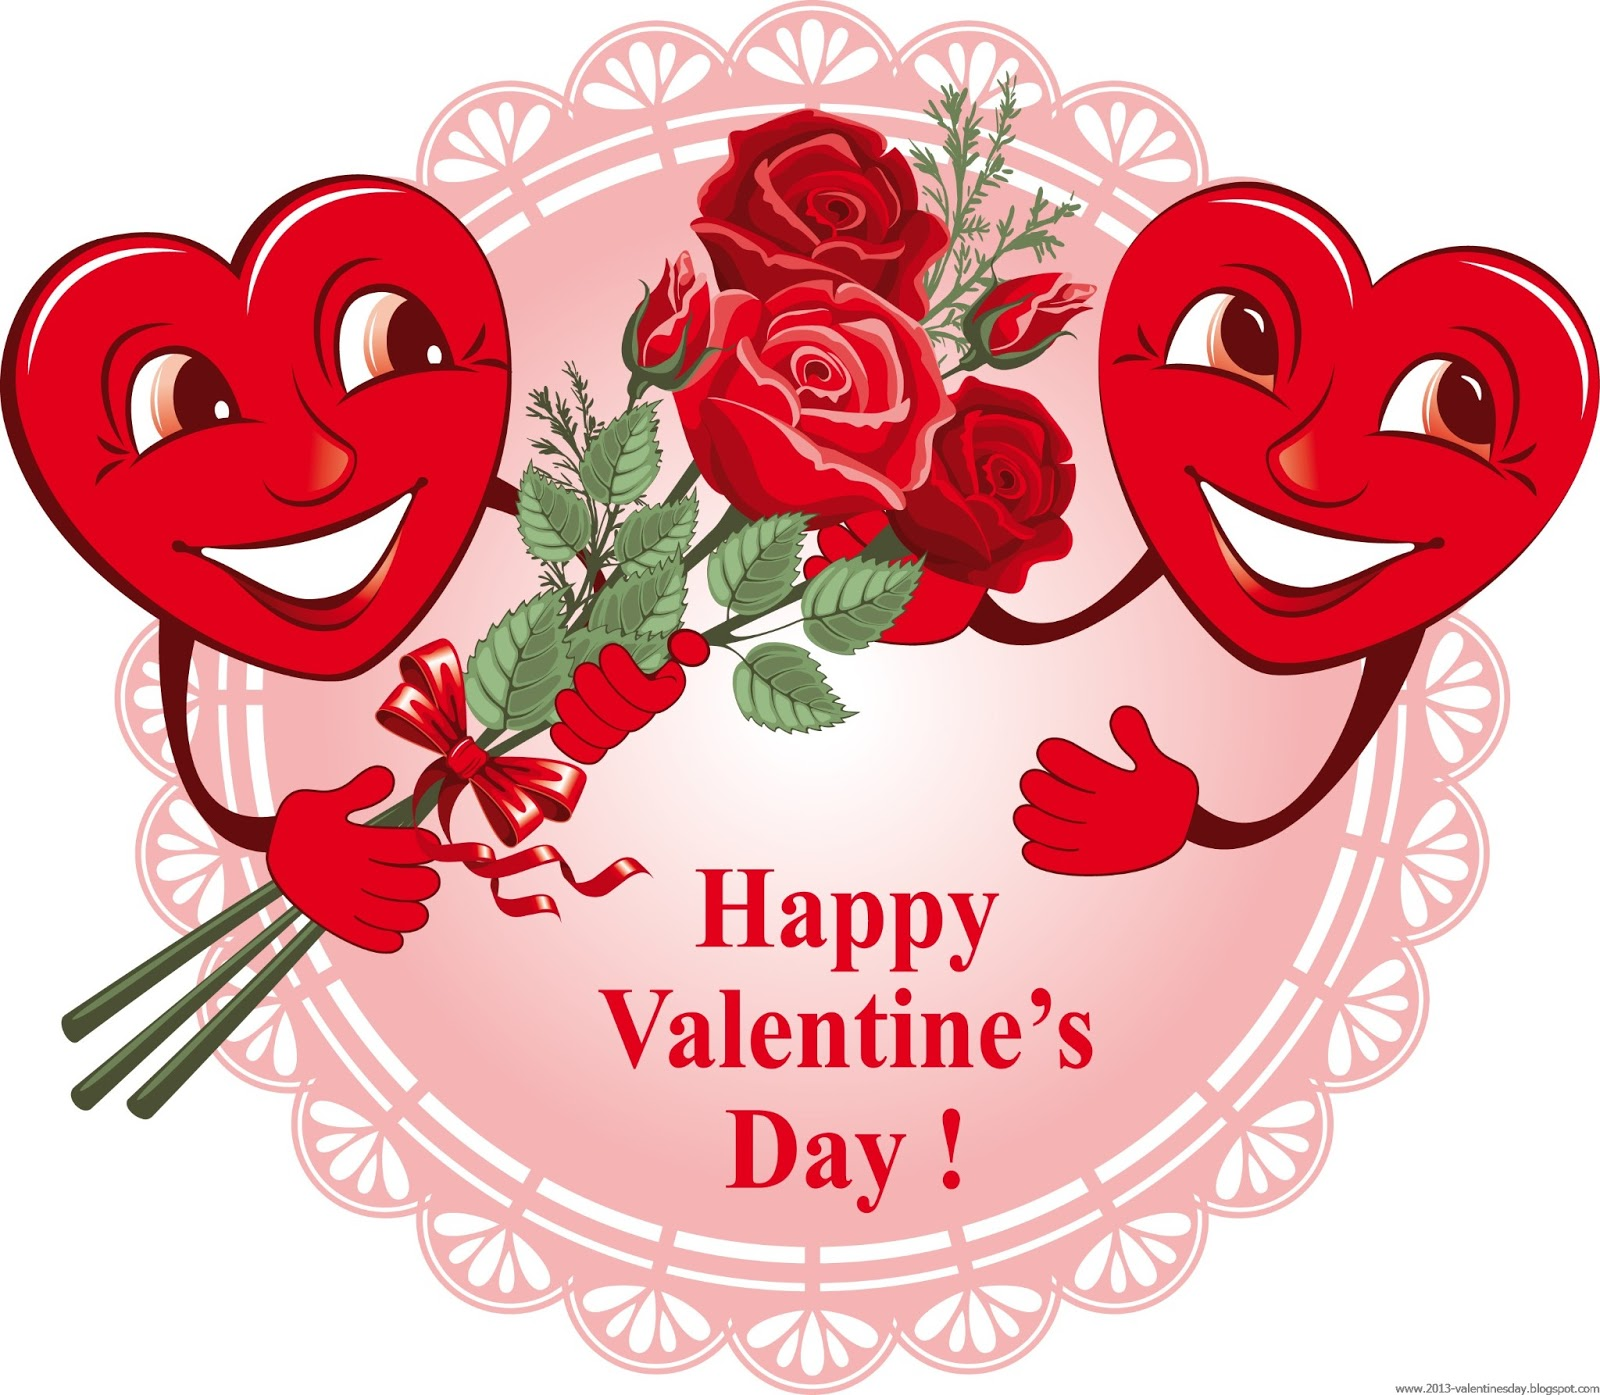 Free Animated Valentines Day .-Free Animated Valentines Day .-9